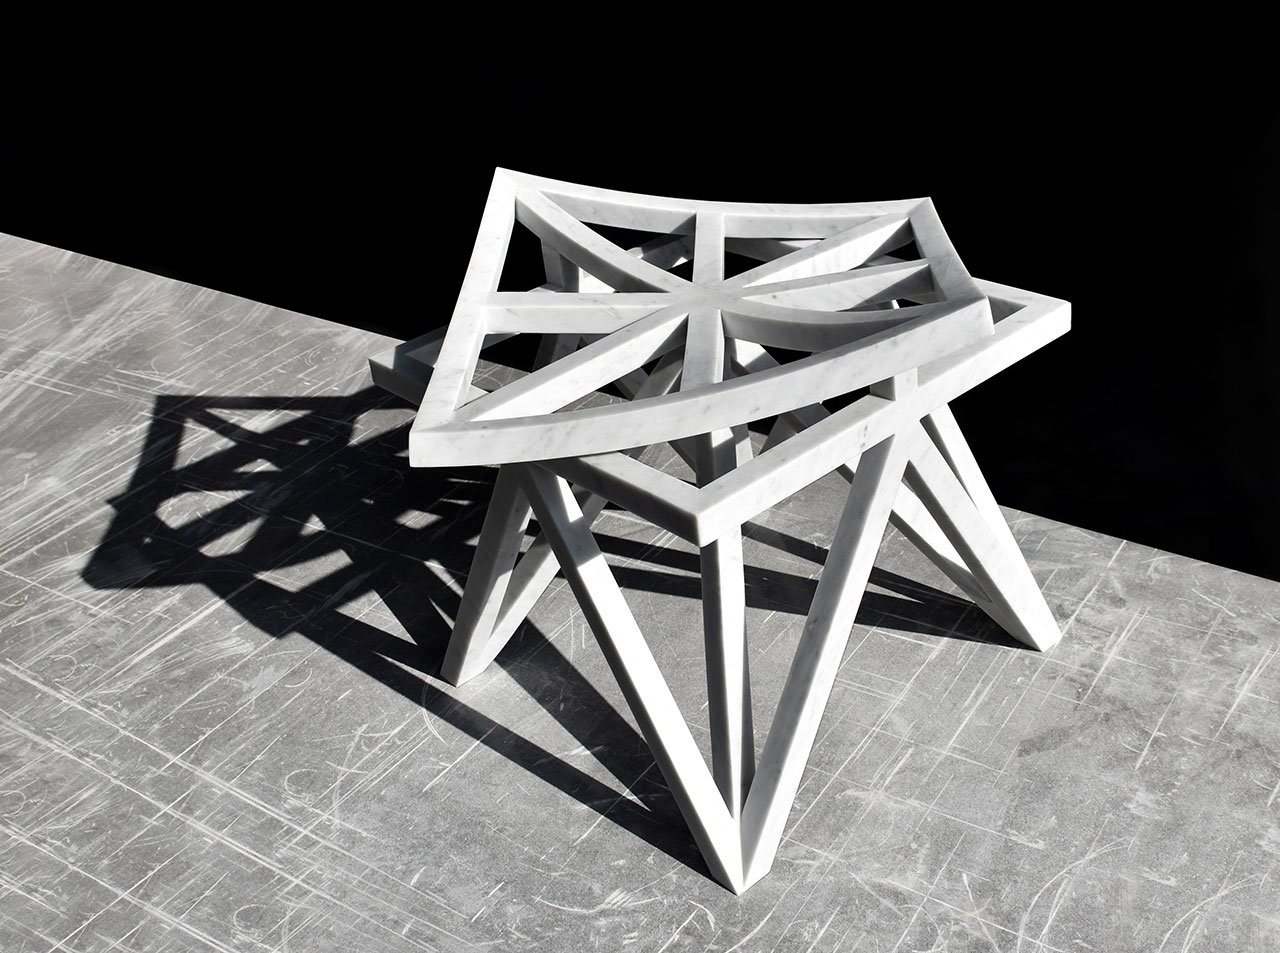 Double Square stool by Aljoud Lootah. Photo courtesy Design Days Dubai and the designer.